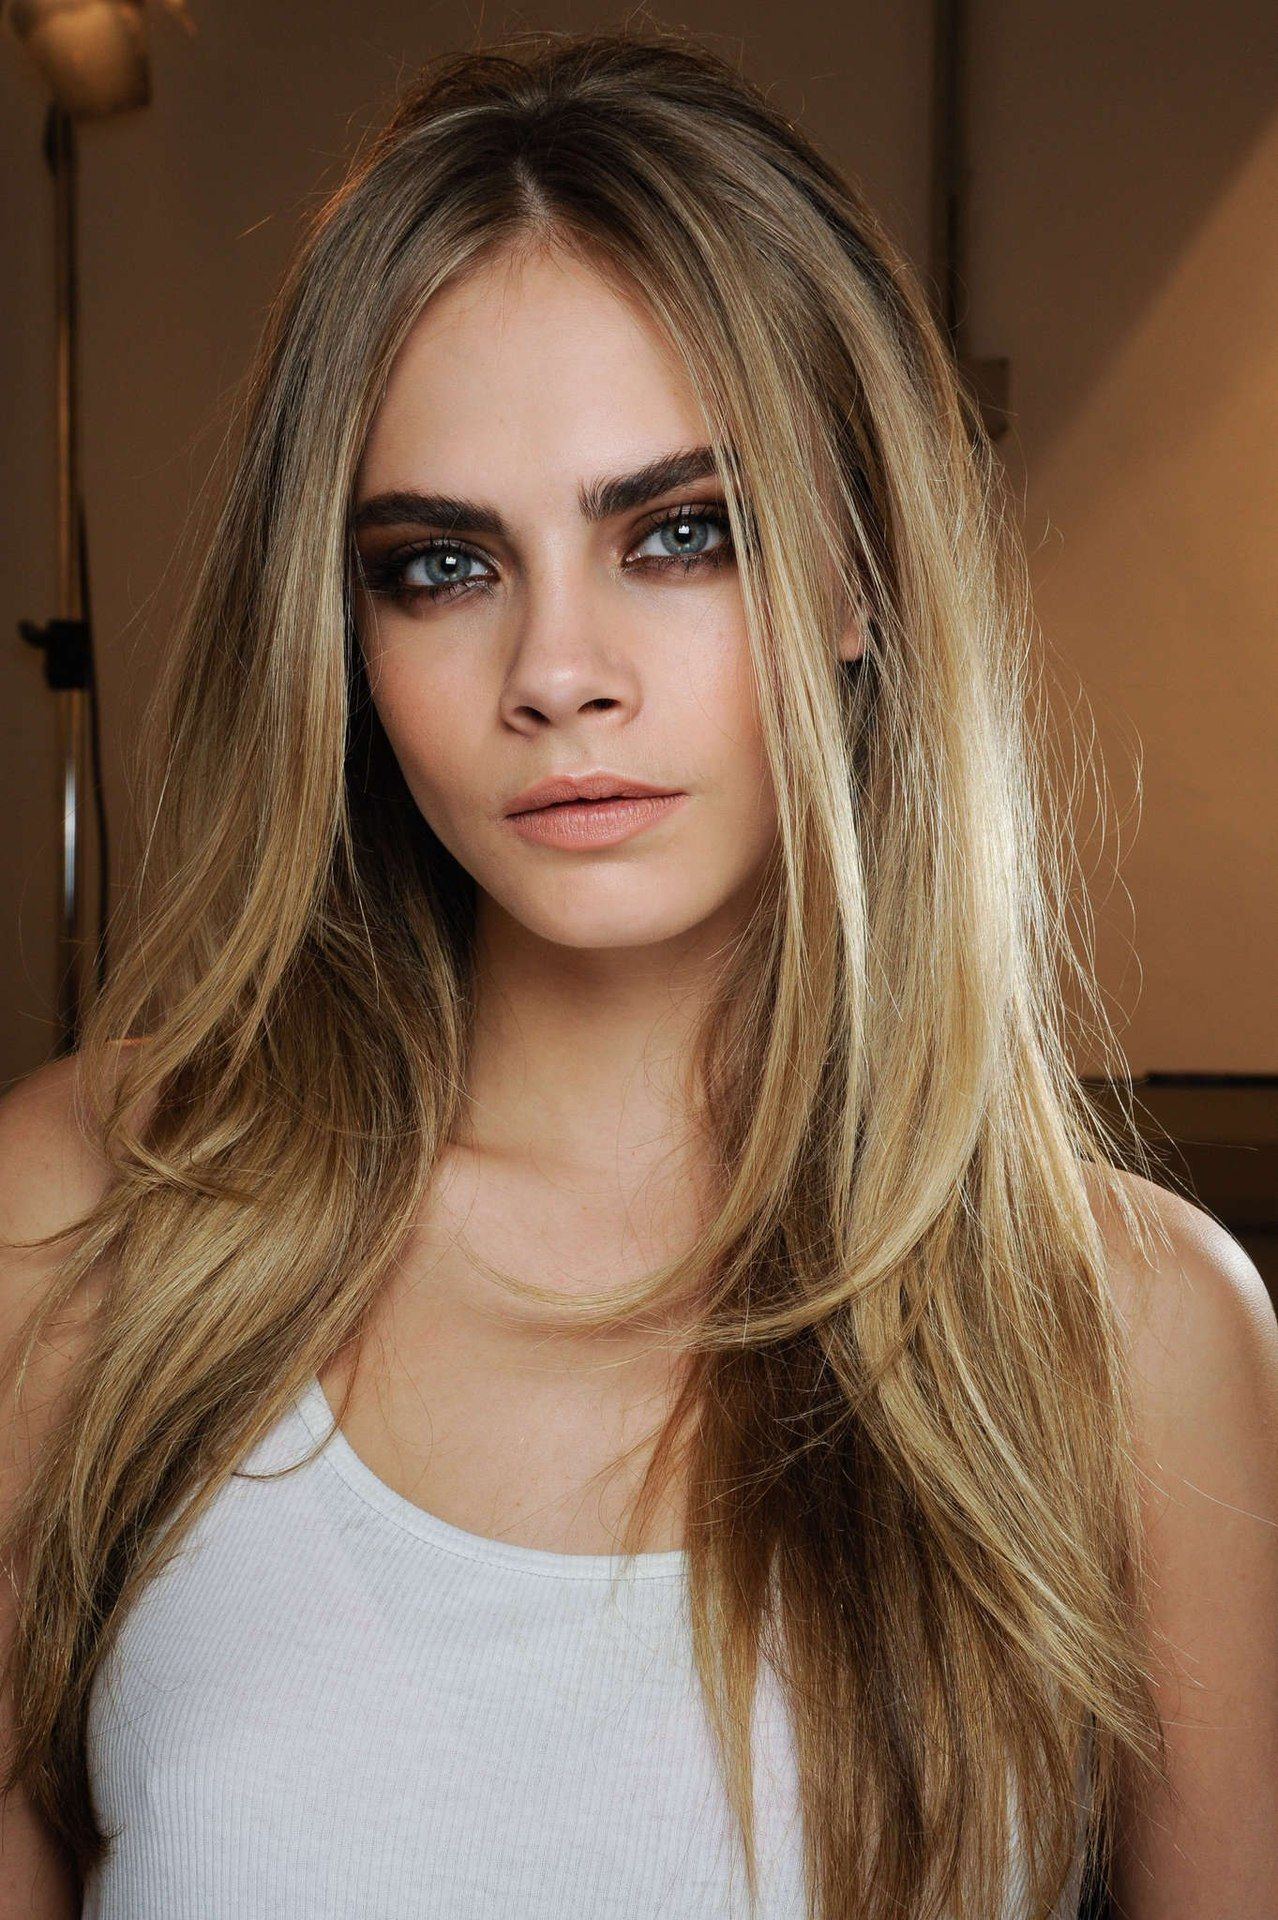 The 25 Best Cara Delevingne Hair Color Ideas On Pinterest Cara Delevigne Makeup Will Red